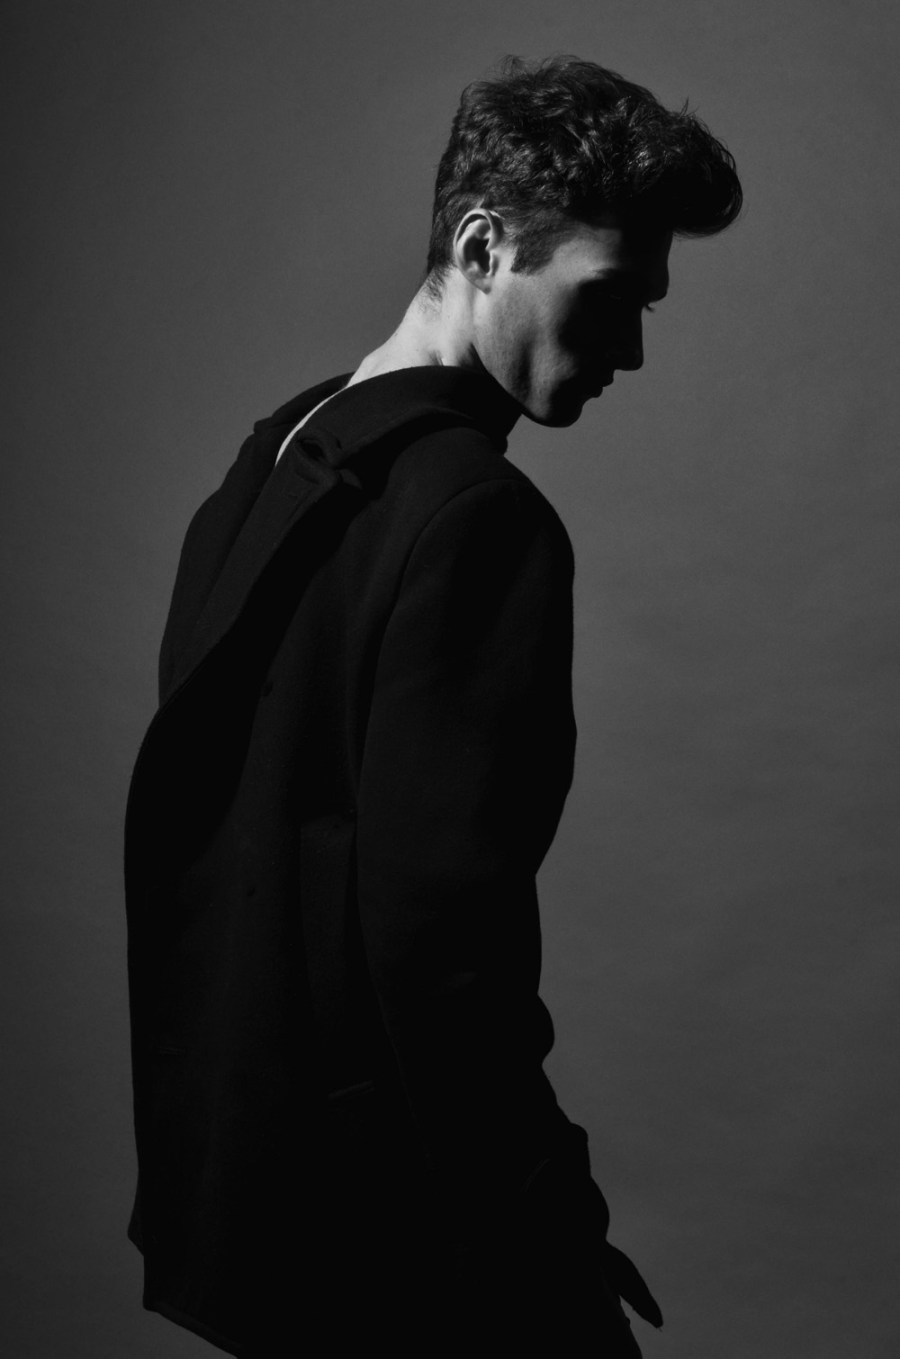 Portraying North Wales based model Aaron Robinson from Nemesis Models, photographer Malc Stone captured natural sense in black and white.